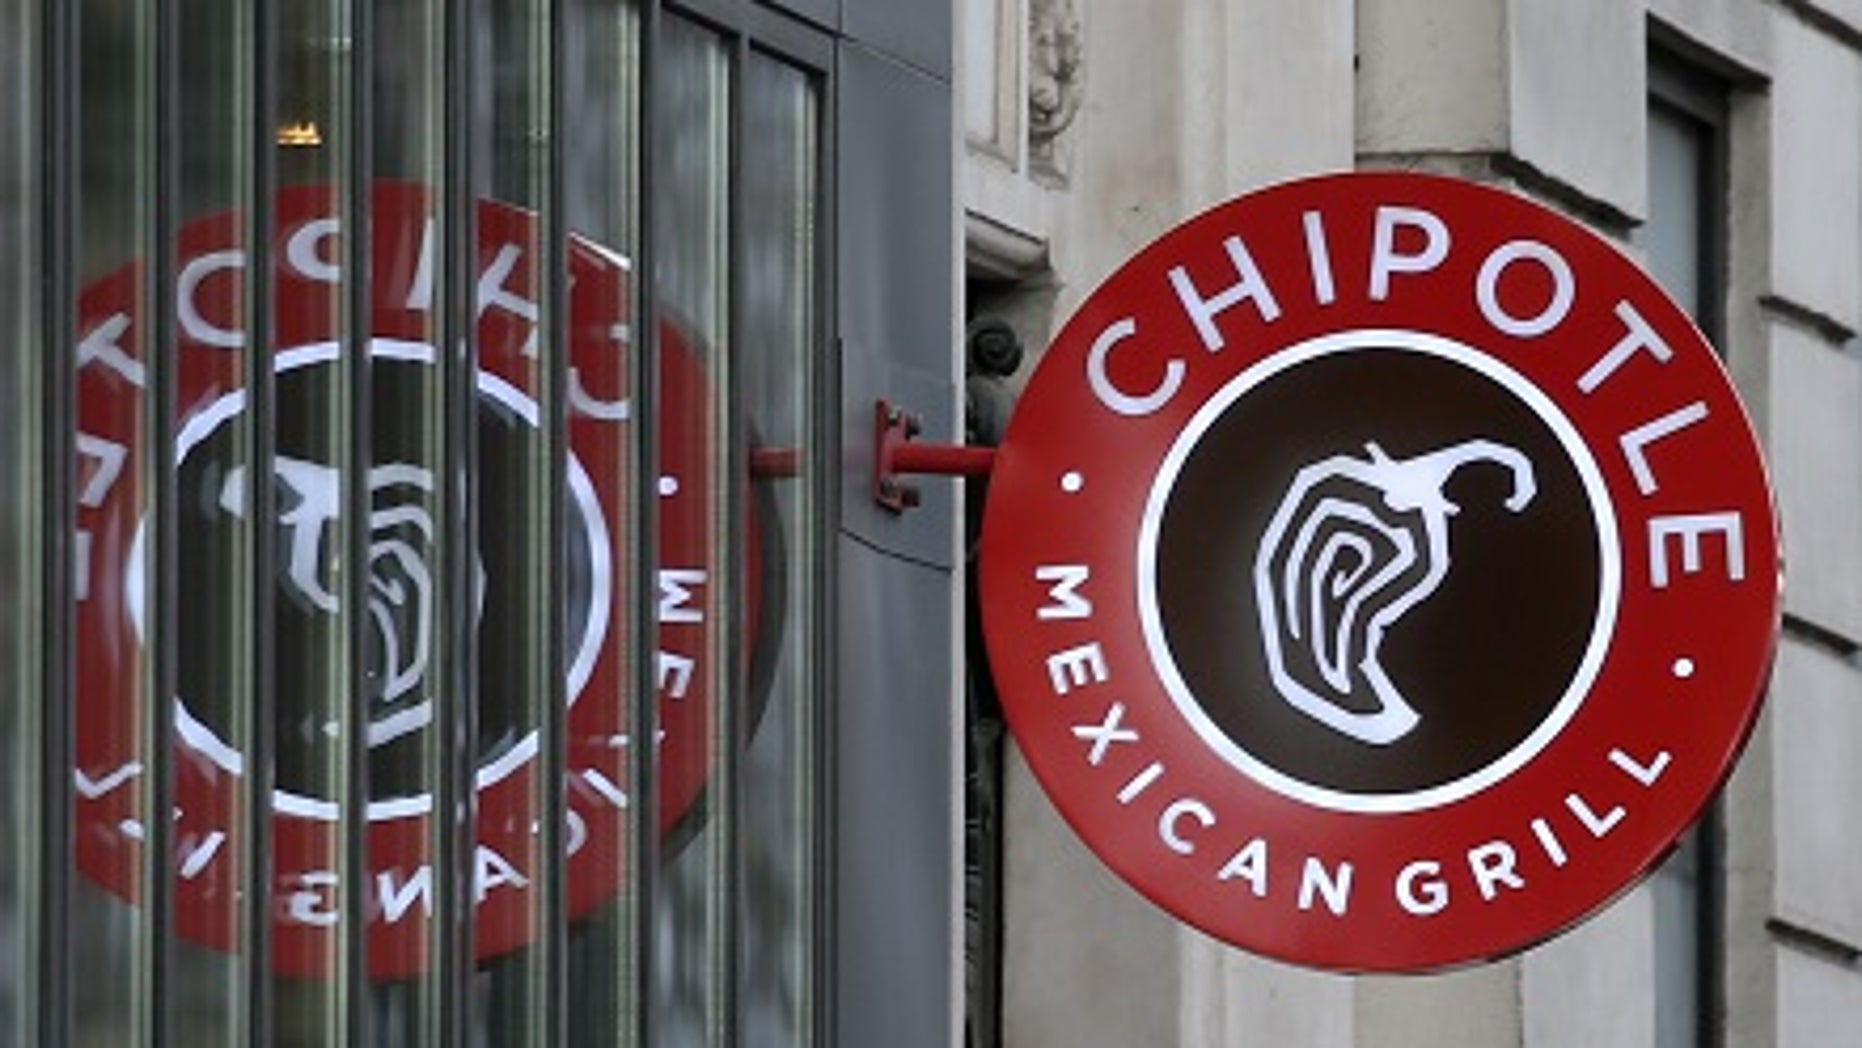 A man who ate Chipotle for 500 days straight said he is ready for something new.